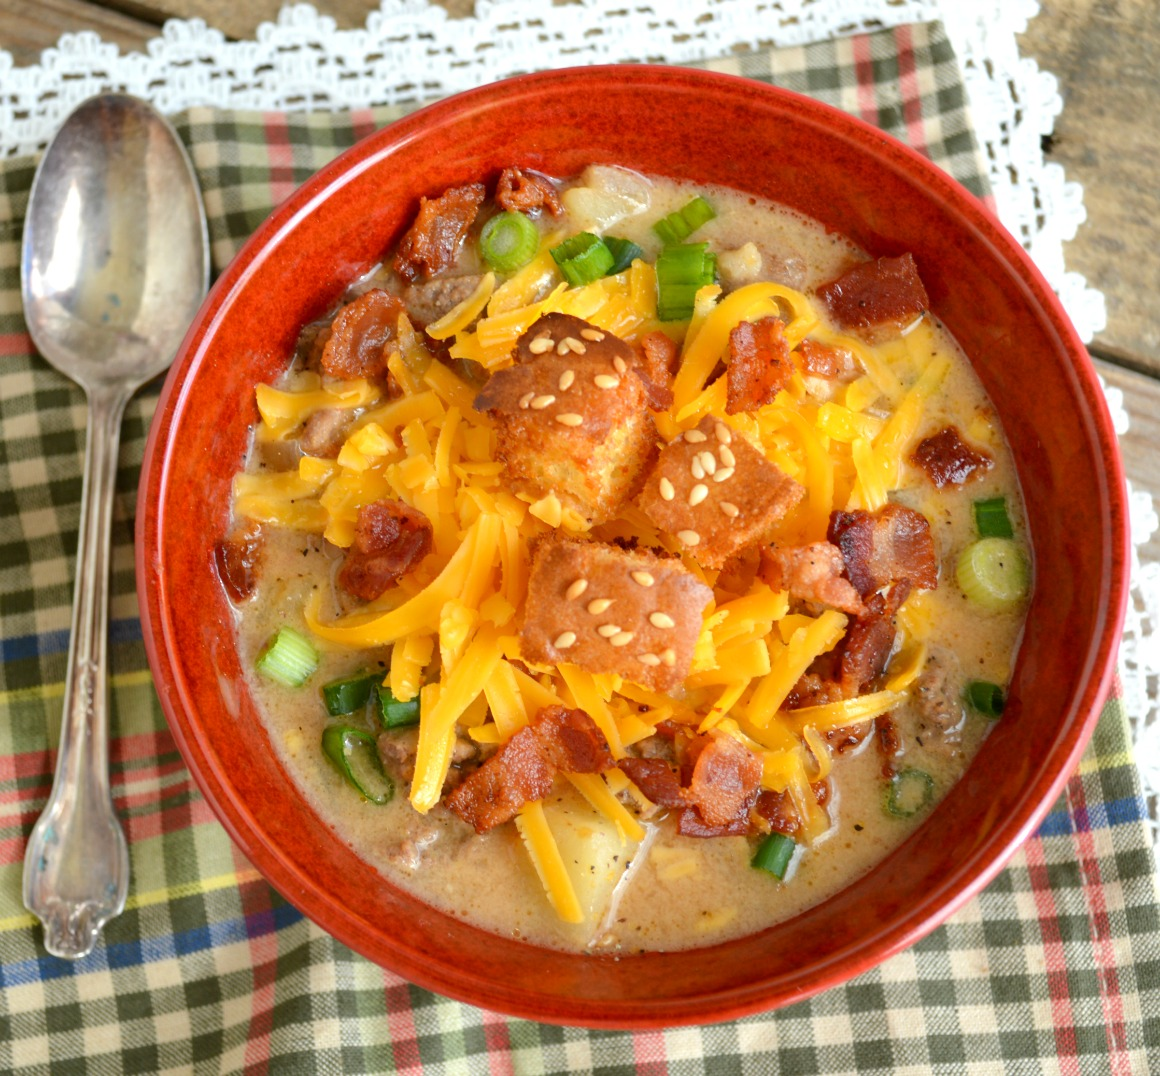 Cheeseburger Soup in a red bowl, topped with croutons and shredded cheese